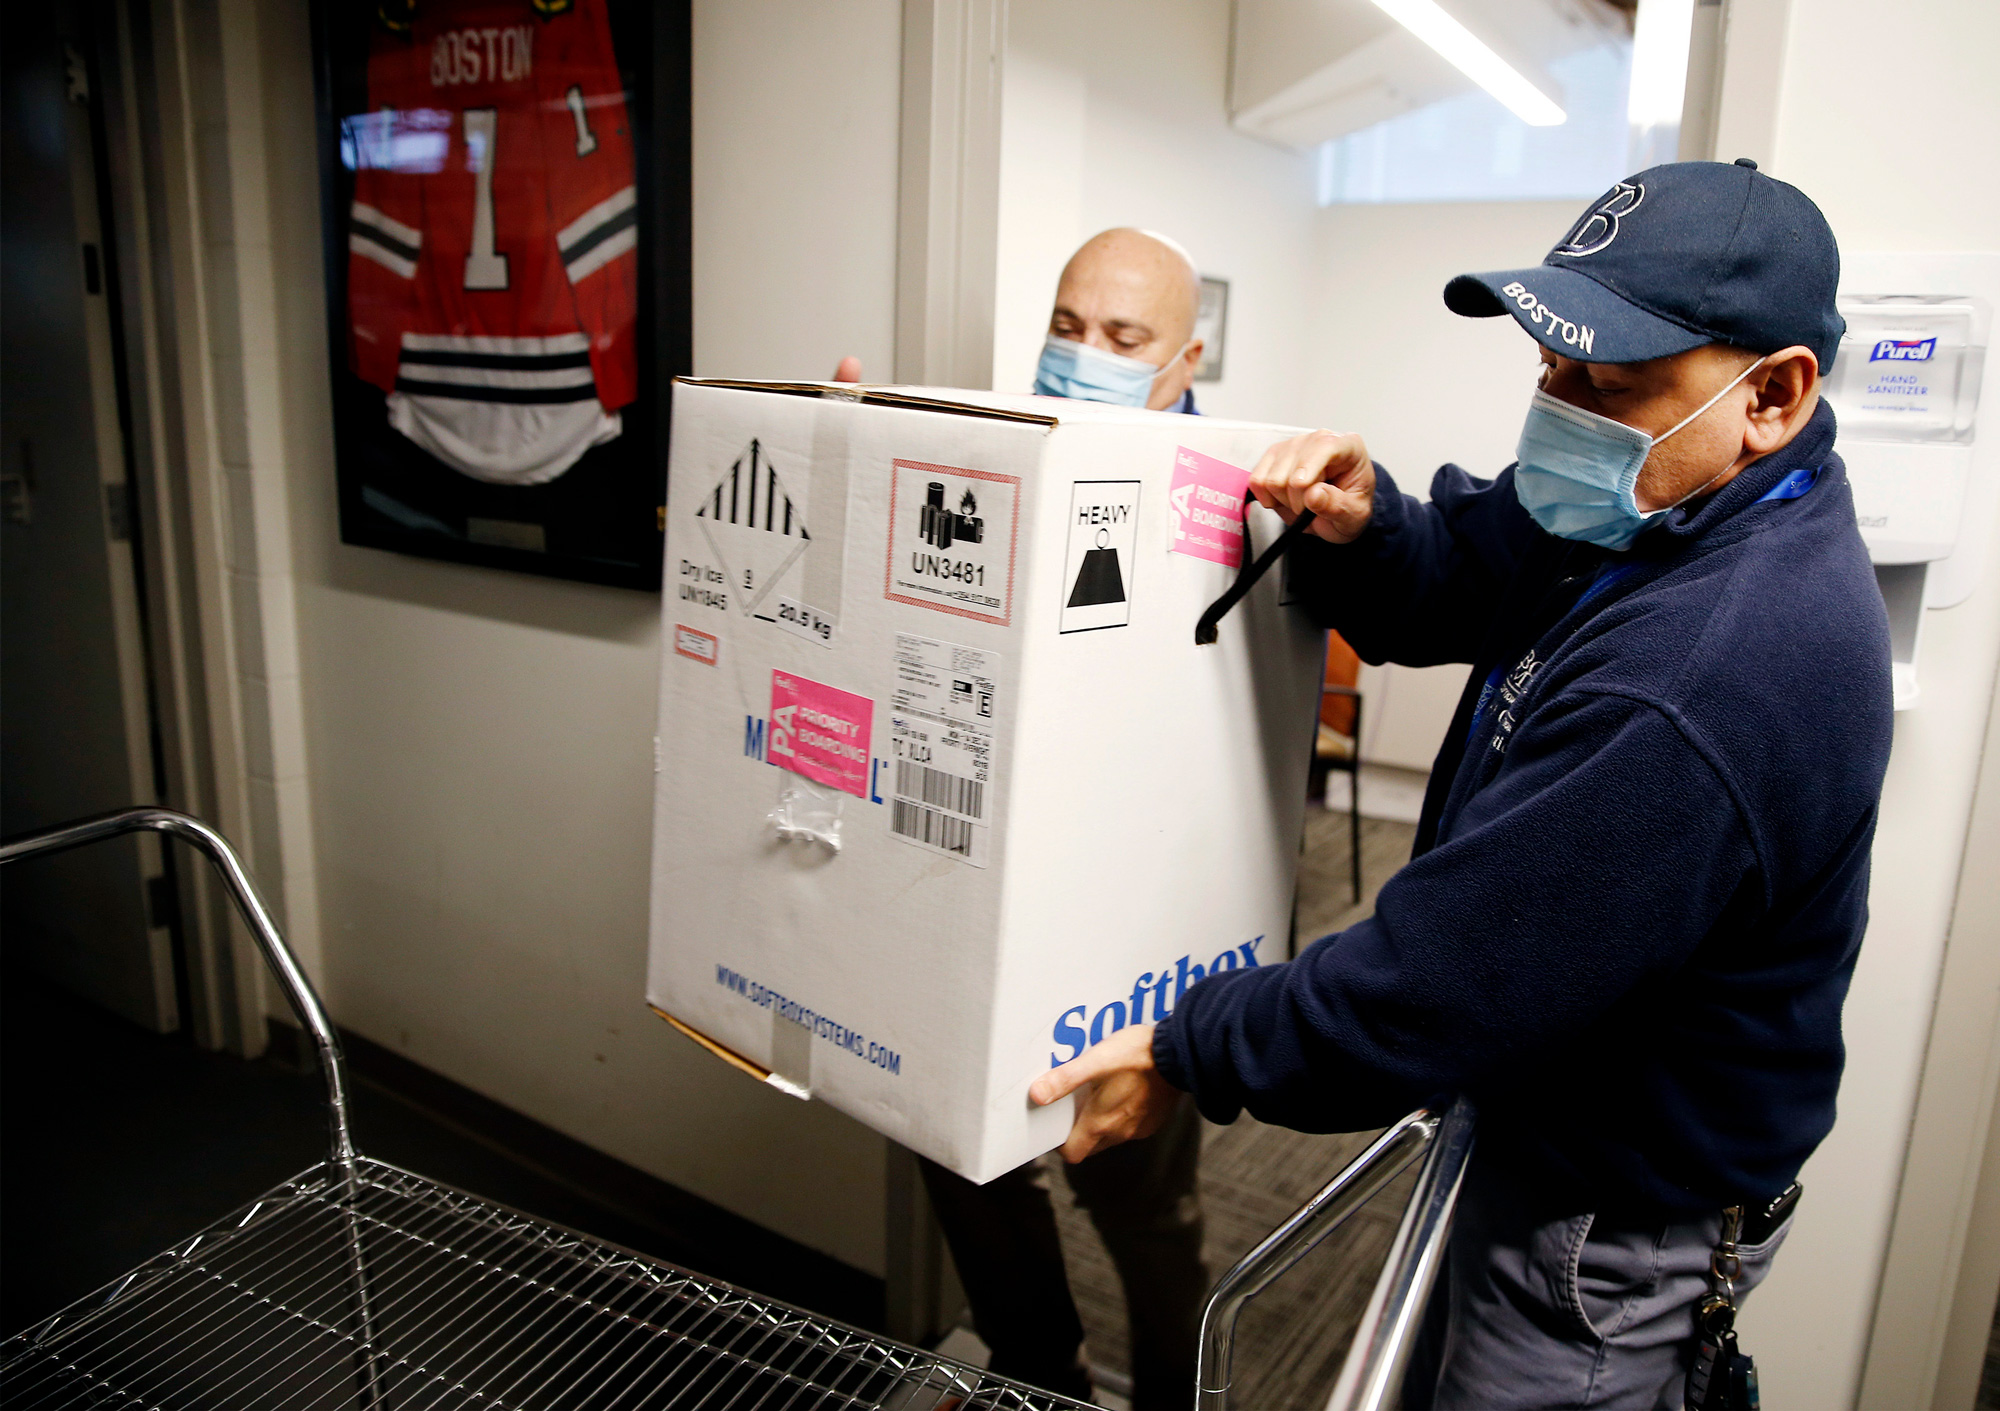 Victor Ruiz with Boston Medical Center Supply Chain Operations and Richard Guarino, left, BMC Supply Chain Operations Associate Director place the hospital's first shipment of the Pfizer-BioNTech COVID-19 vaccine on a cart to deliver to the pharmacy at Boston Medical Center on December 14 in Boston.